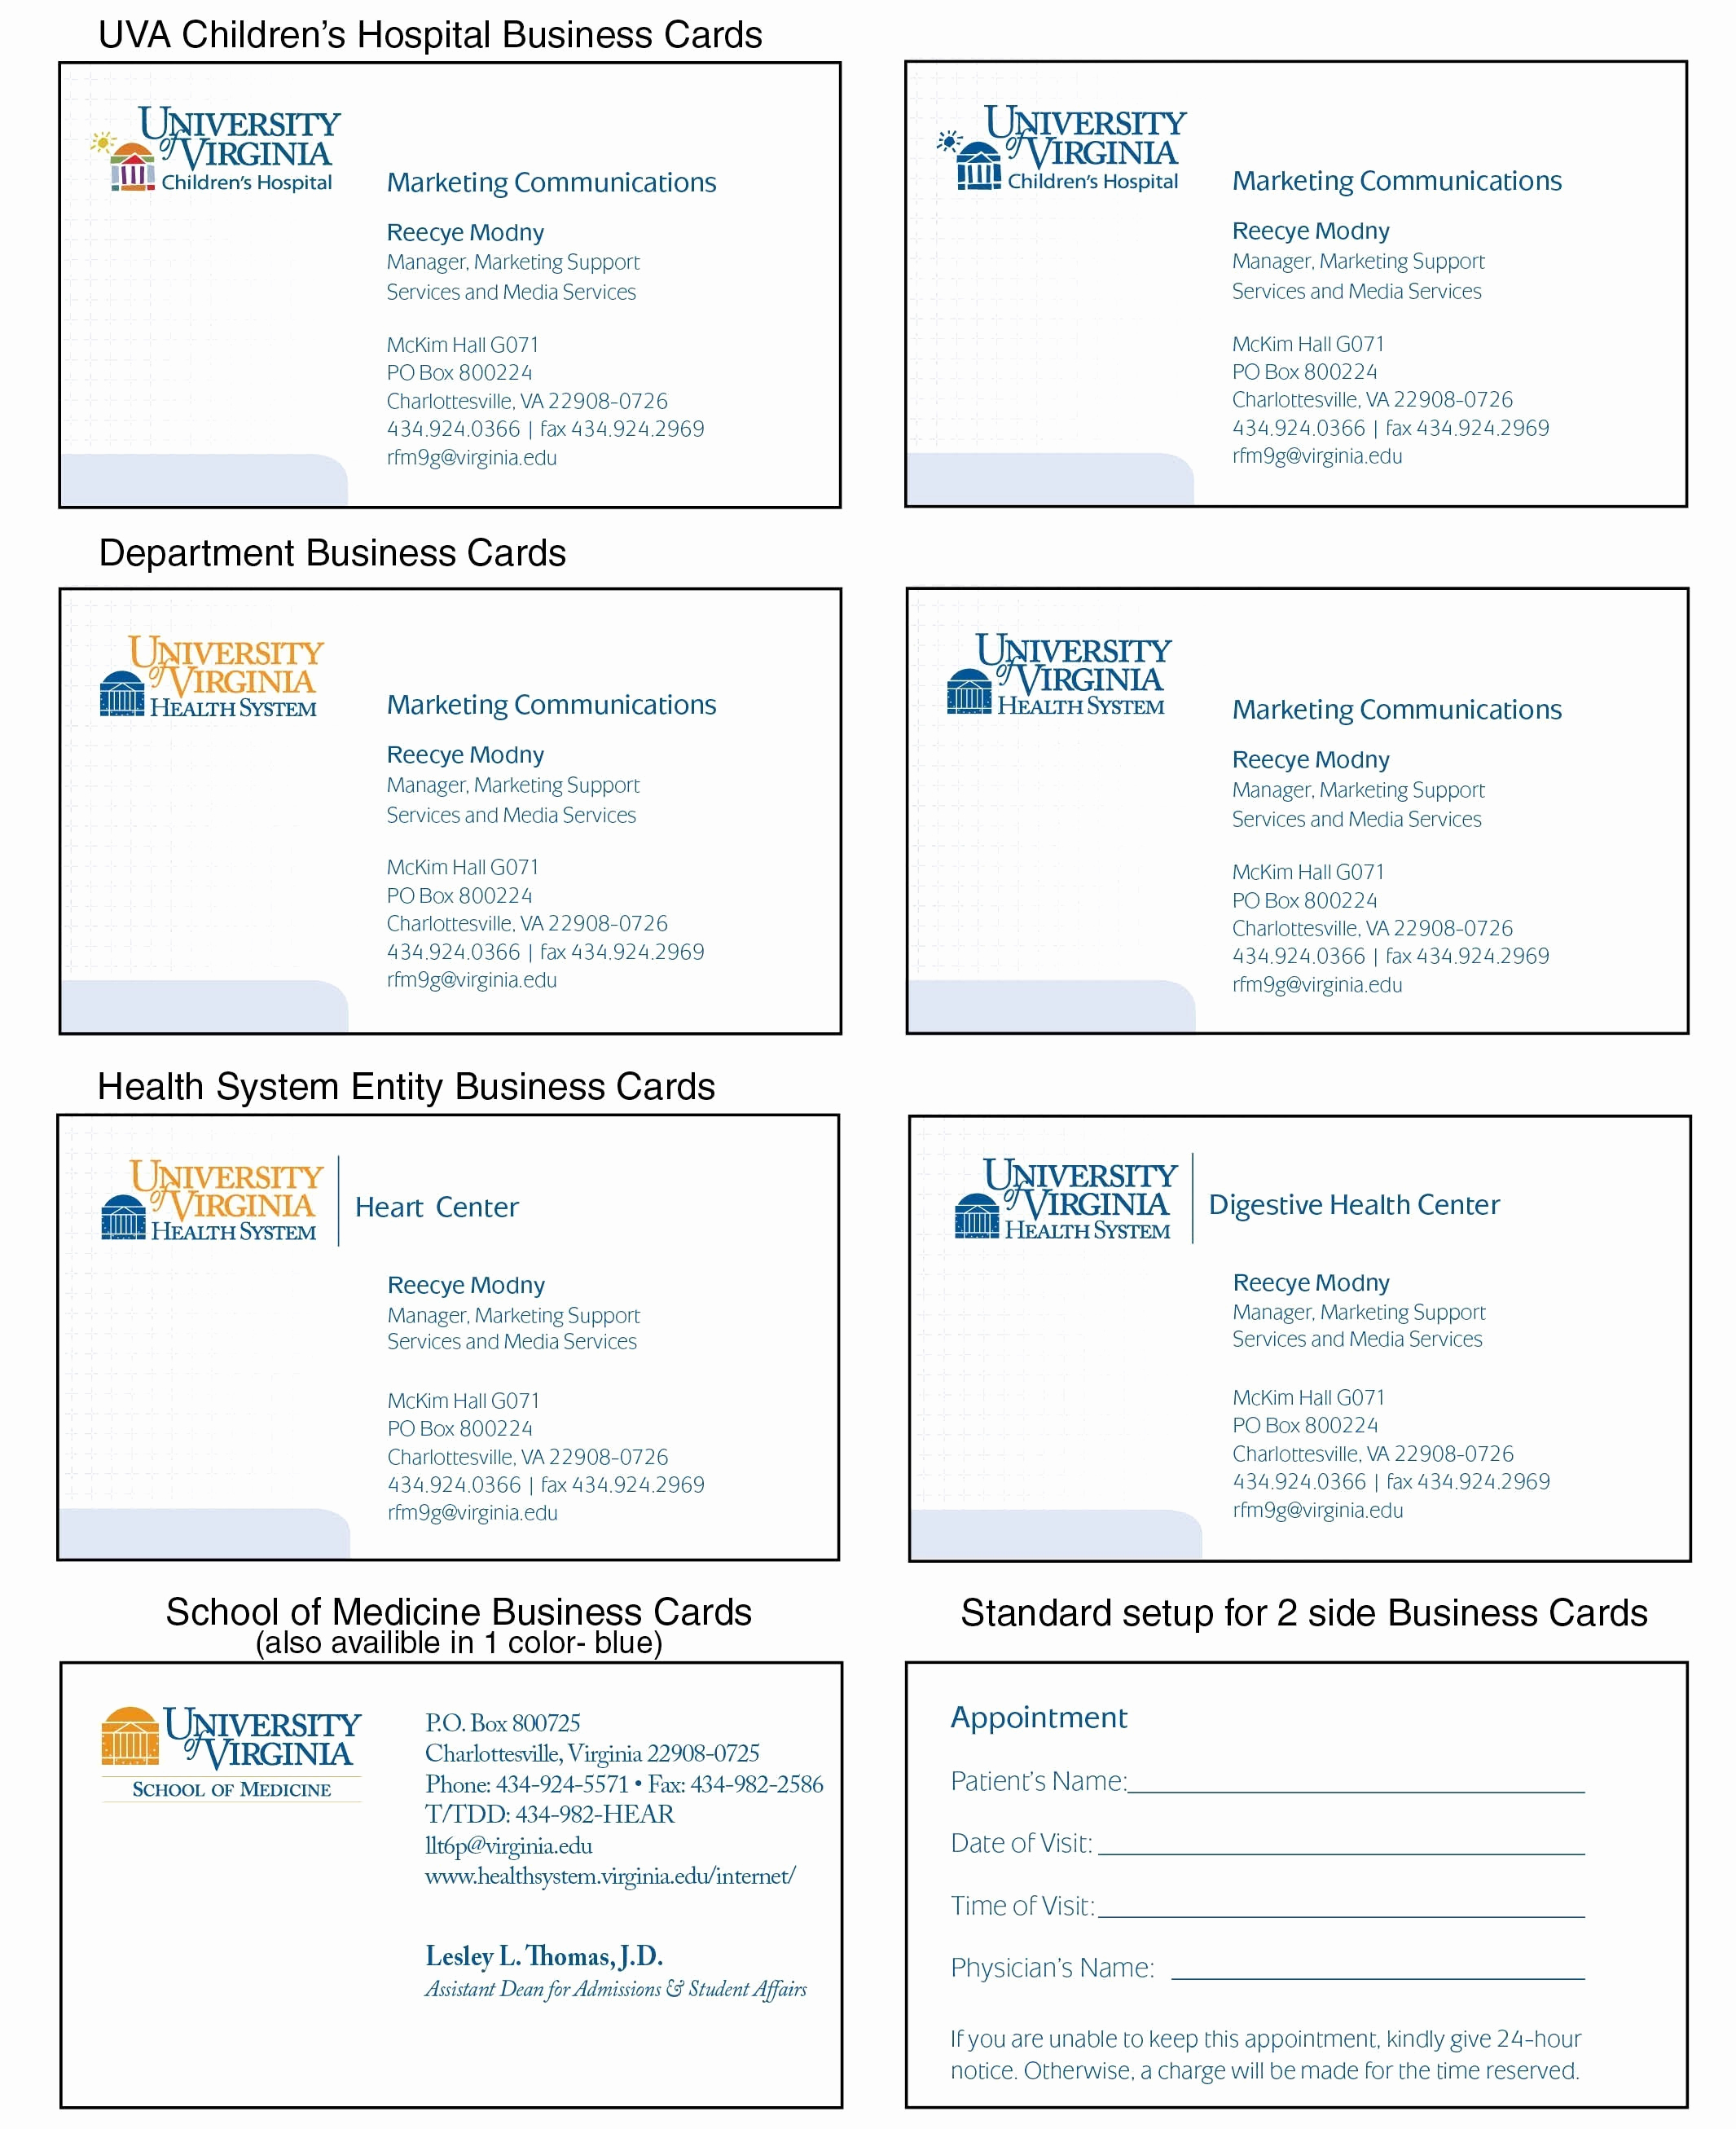 Networking Card Template Awesome Handyman Business Cards Regarding Networking Card Template